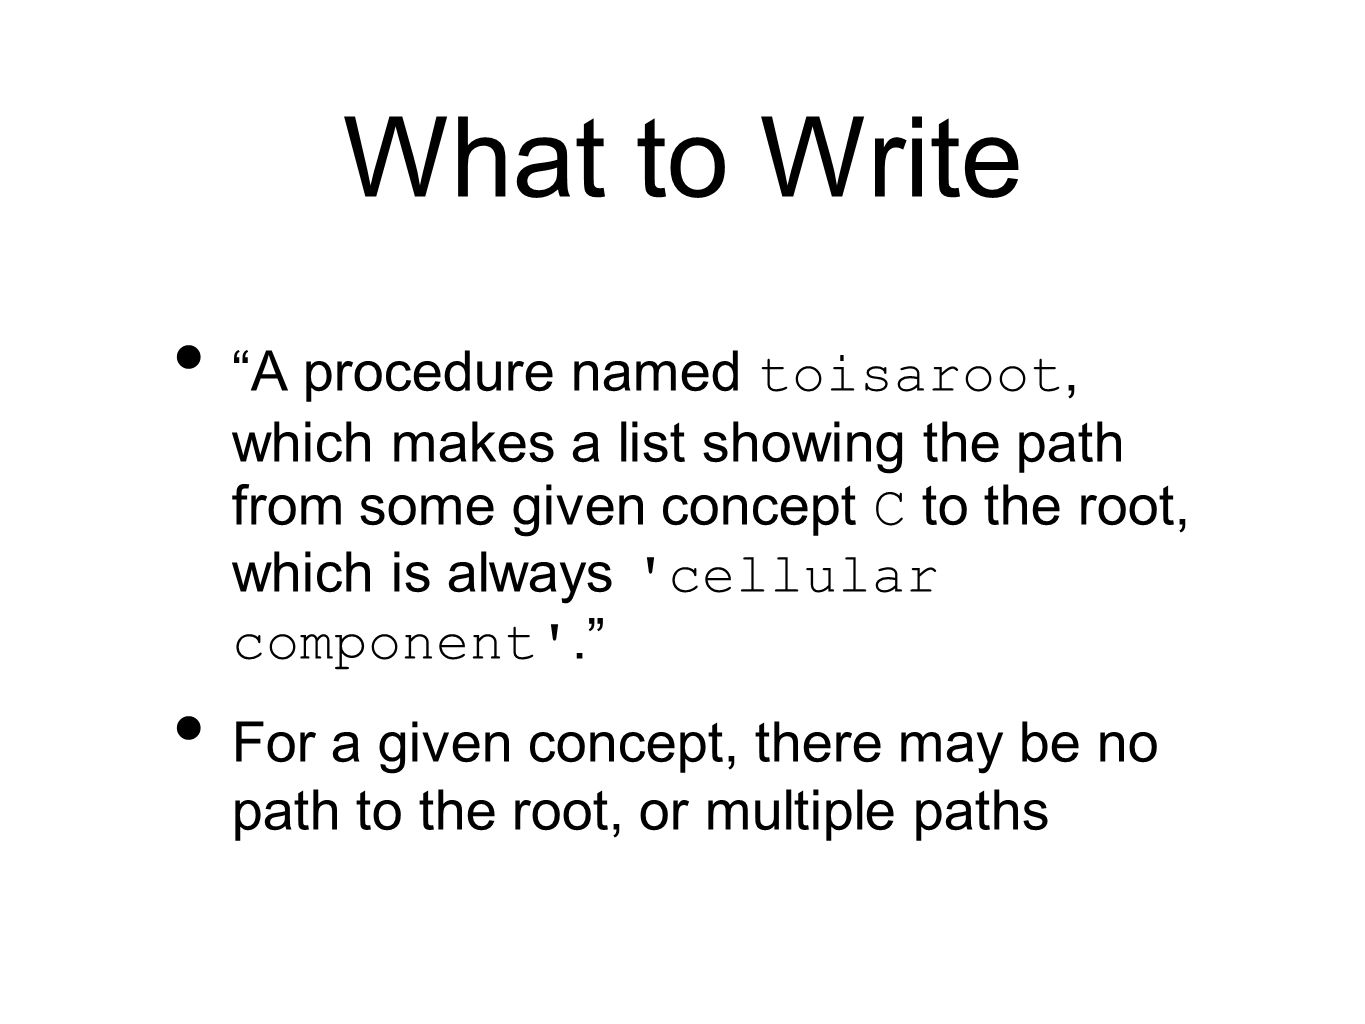 "What to Write ""A procedure named toisaroot, which makes a list showing the path from some given concept C to the root, which is always 'cellular compo"